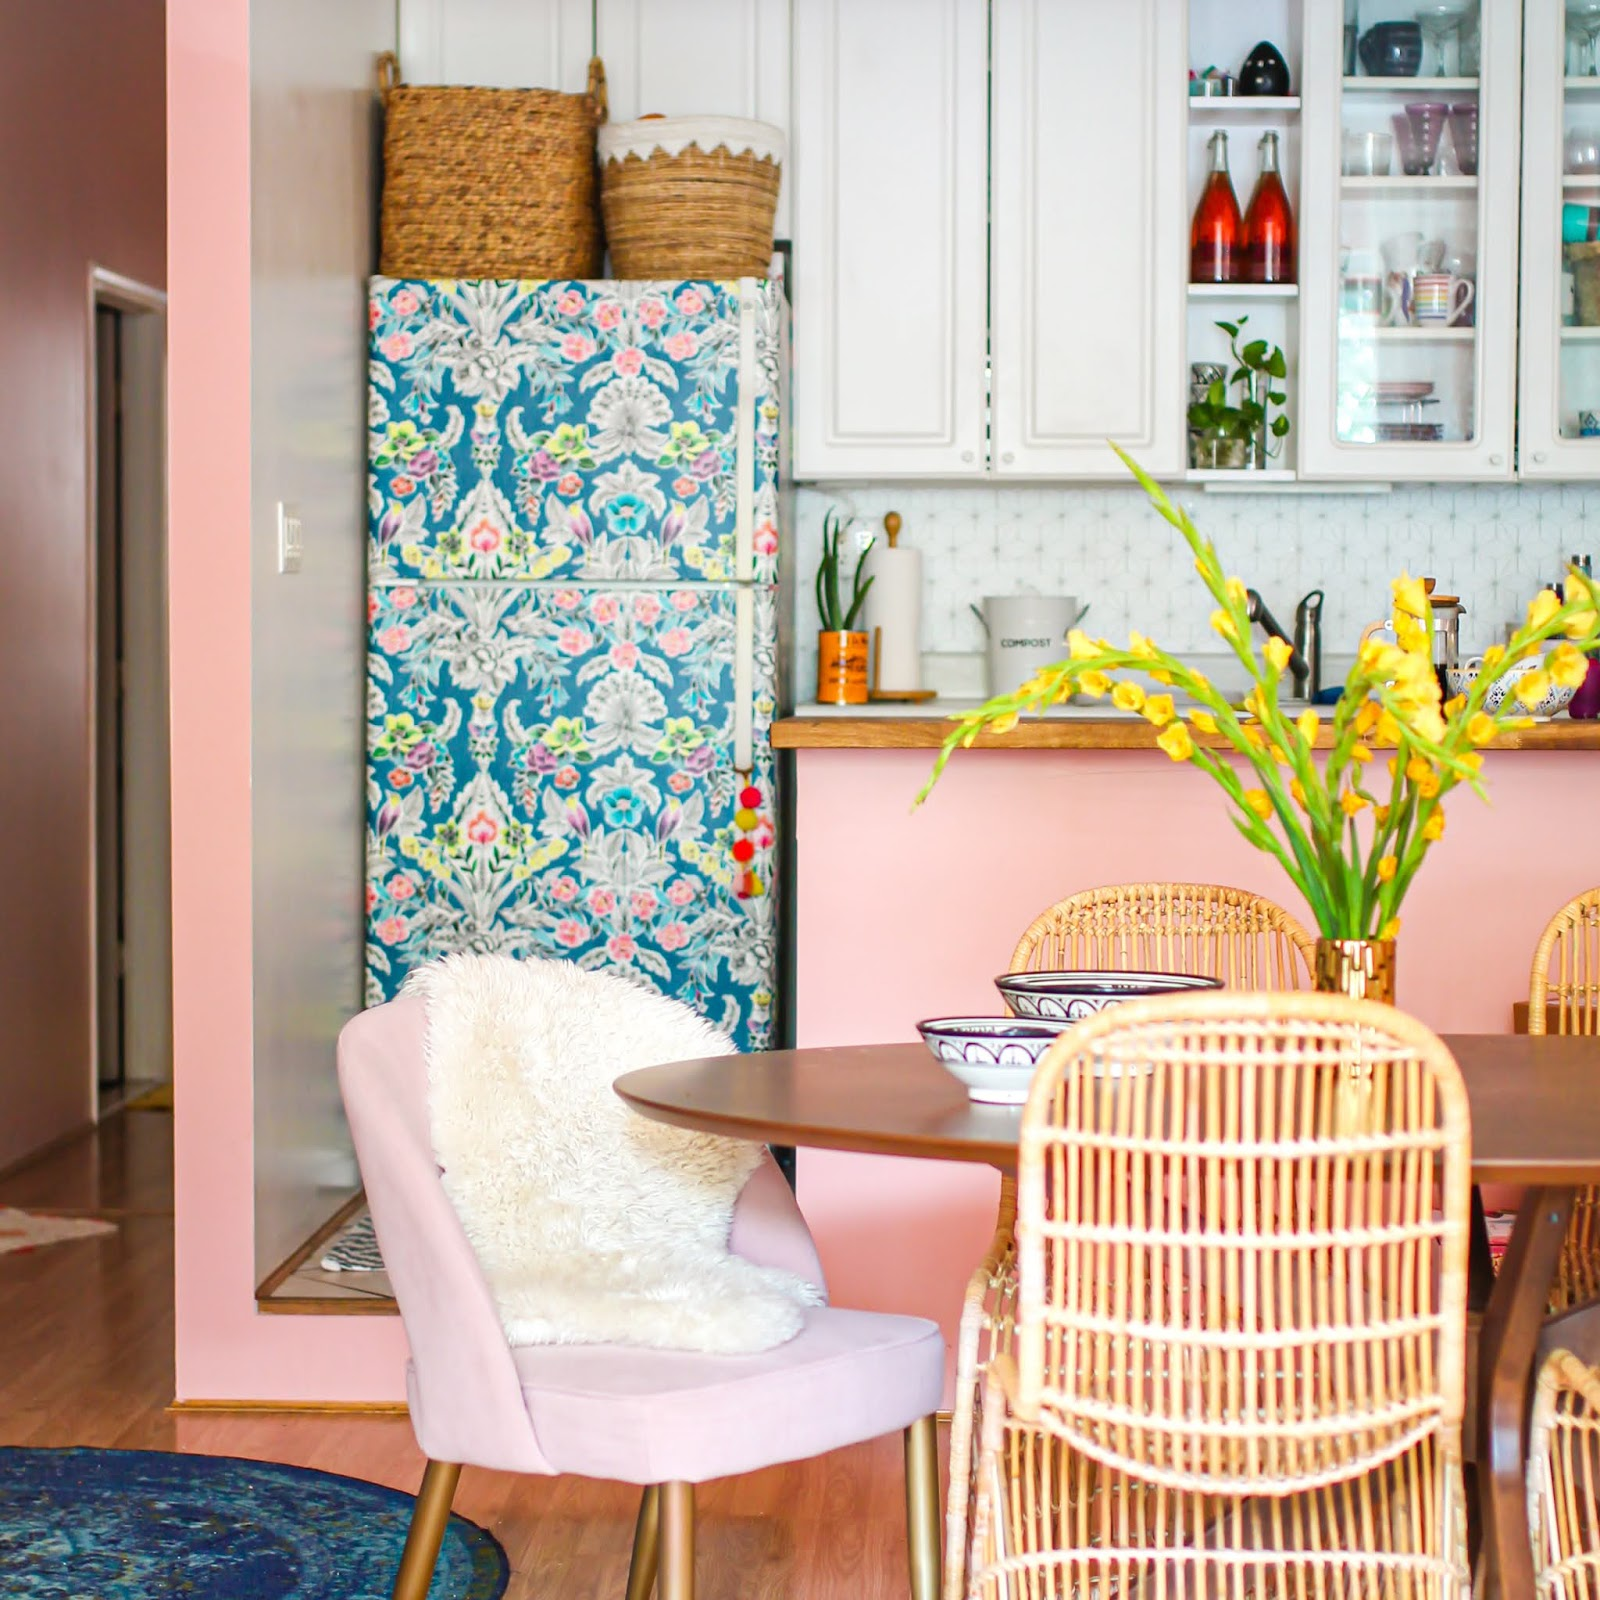 Yep It S Time To Give That Ugly Fridge A Whole New Life With Removable Wallpaper Tfdiaries By Megan Zietz